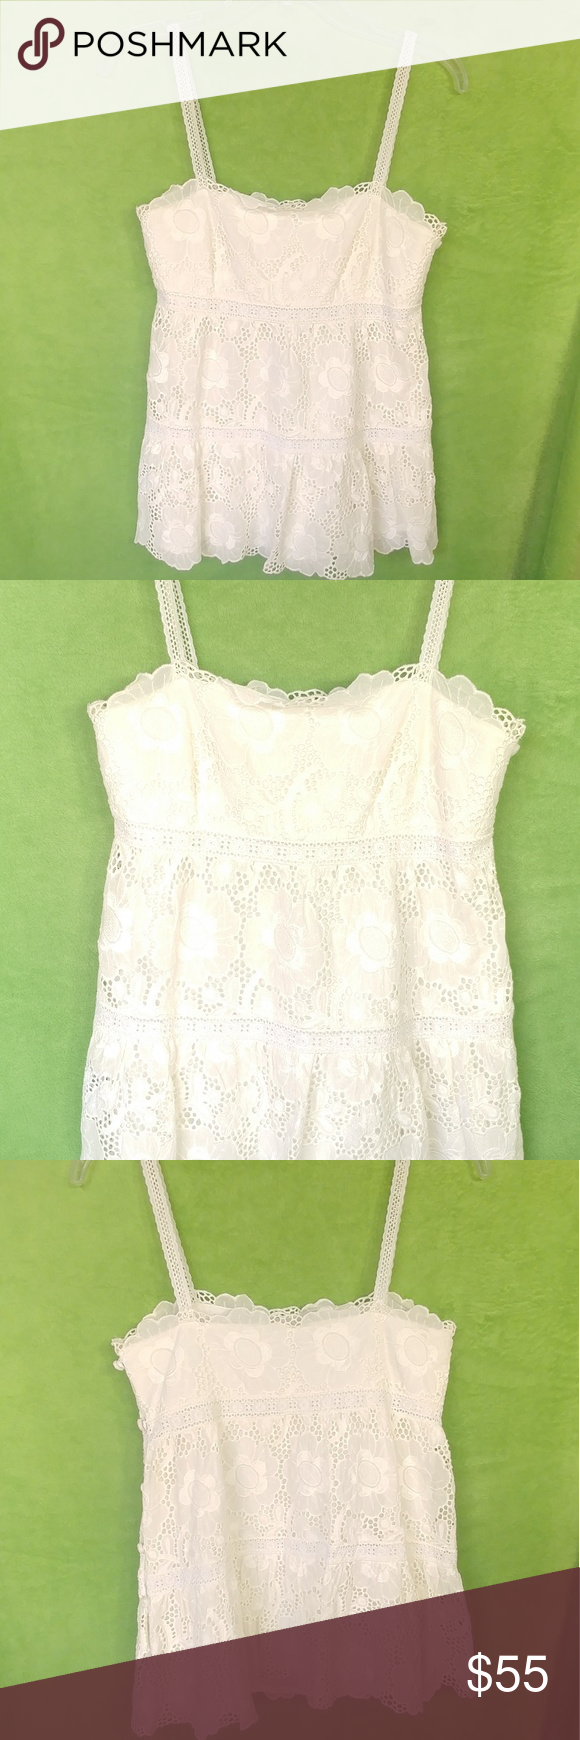 Original Milly Of New York Floral Cami Blouse Lace Cami Top Has Side